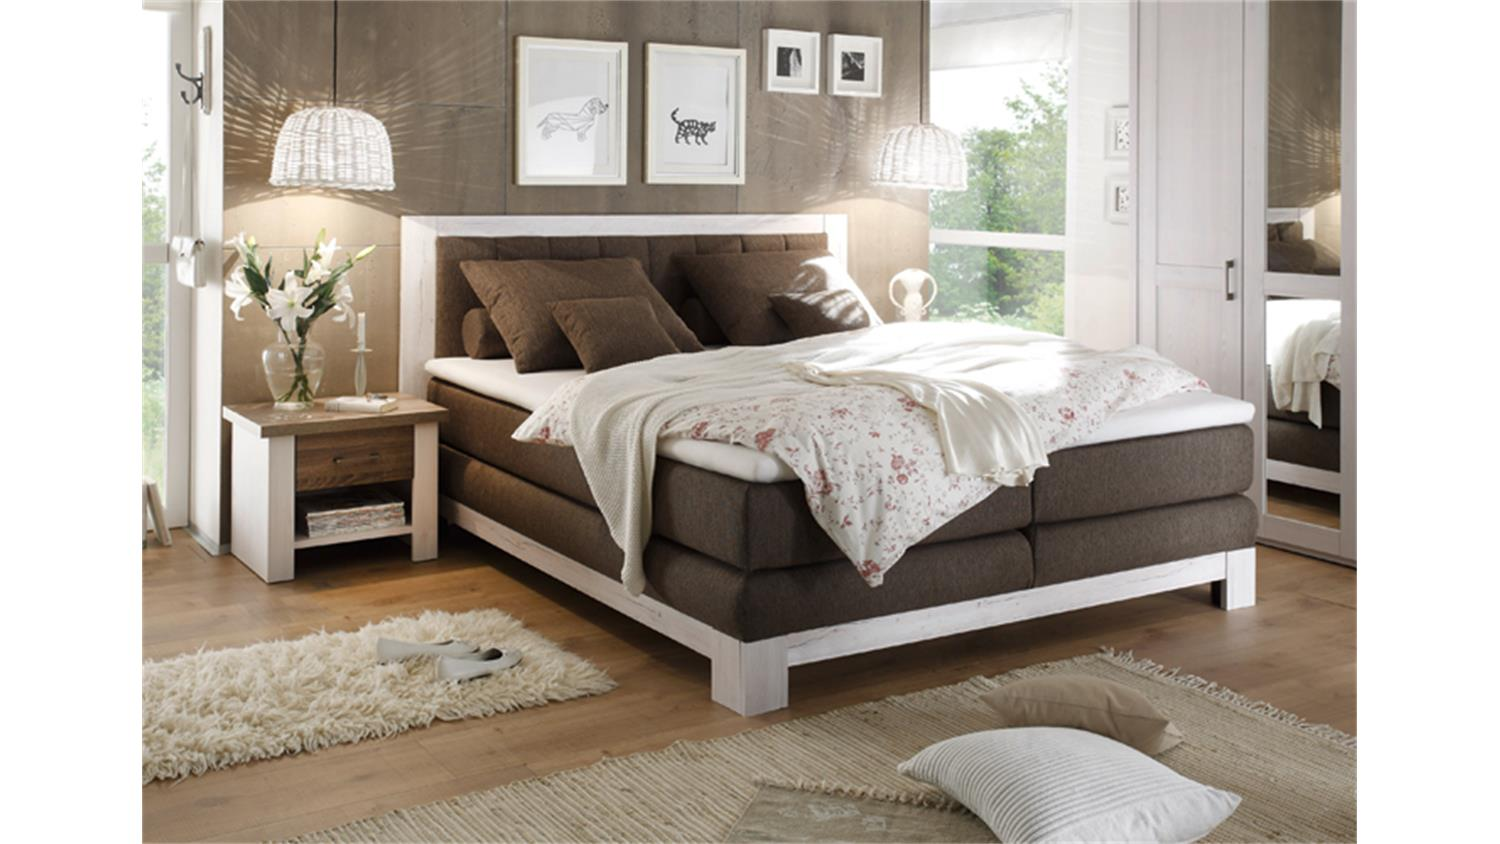 boxspringbett nevada pinie wei tr ffel mit nachtkommoden. Black Bedroom Furniture Sets. Home Design Ideas